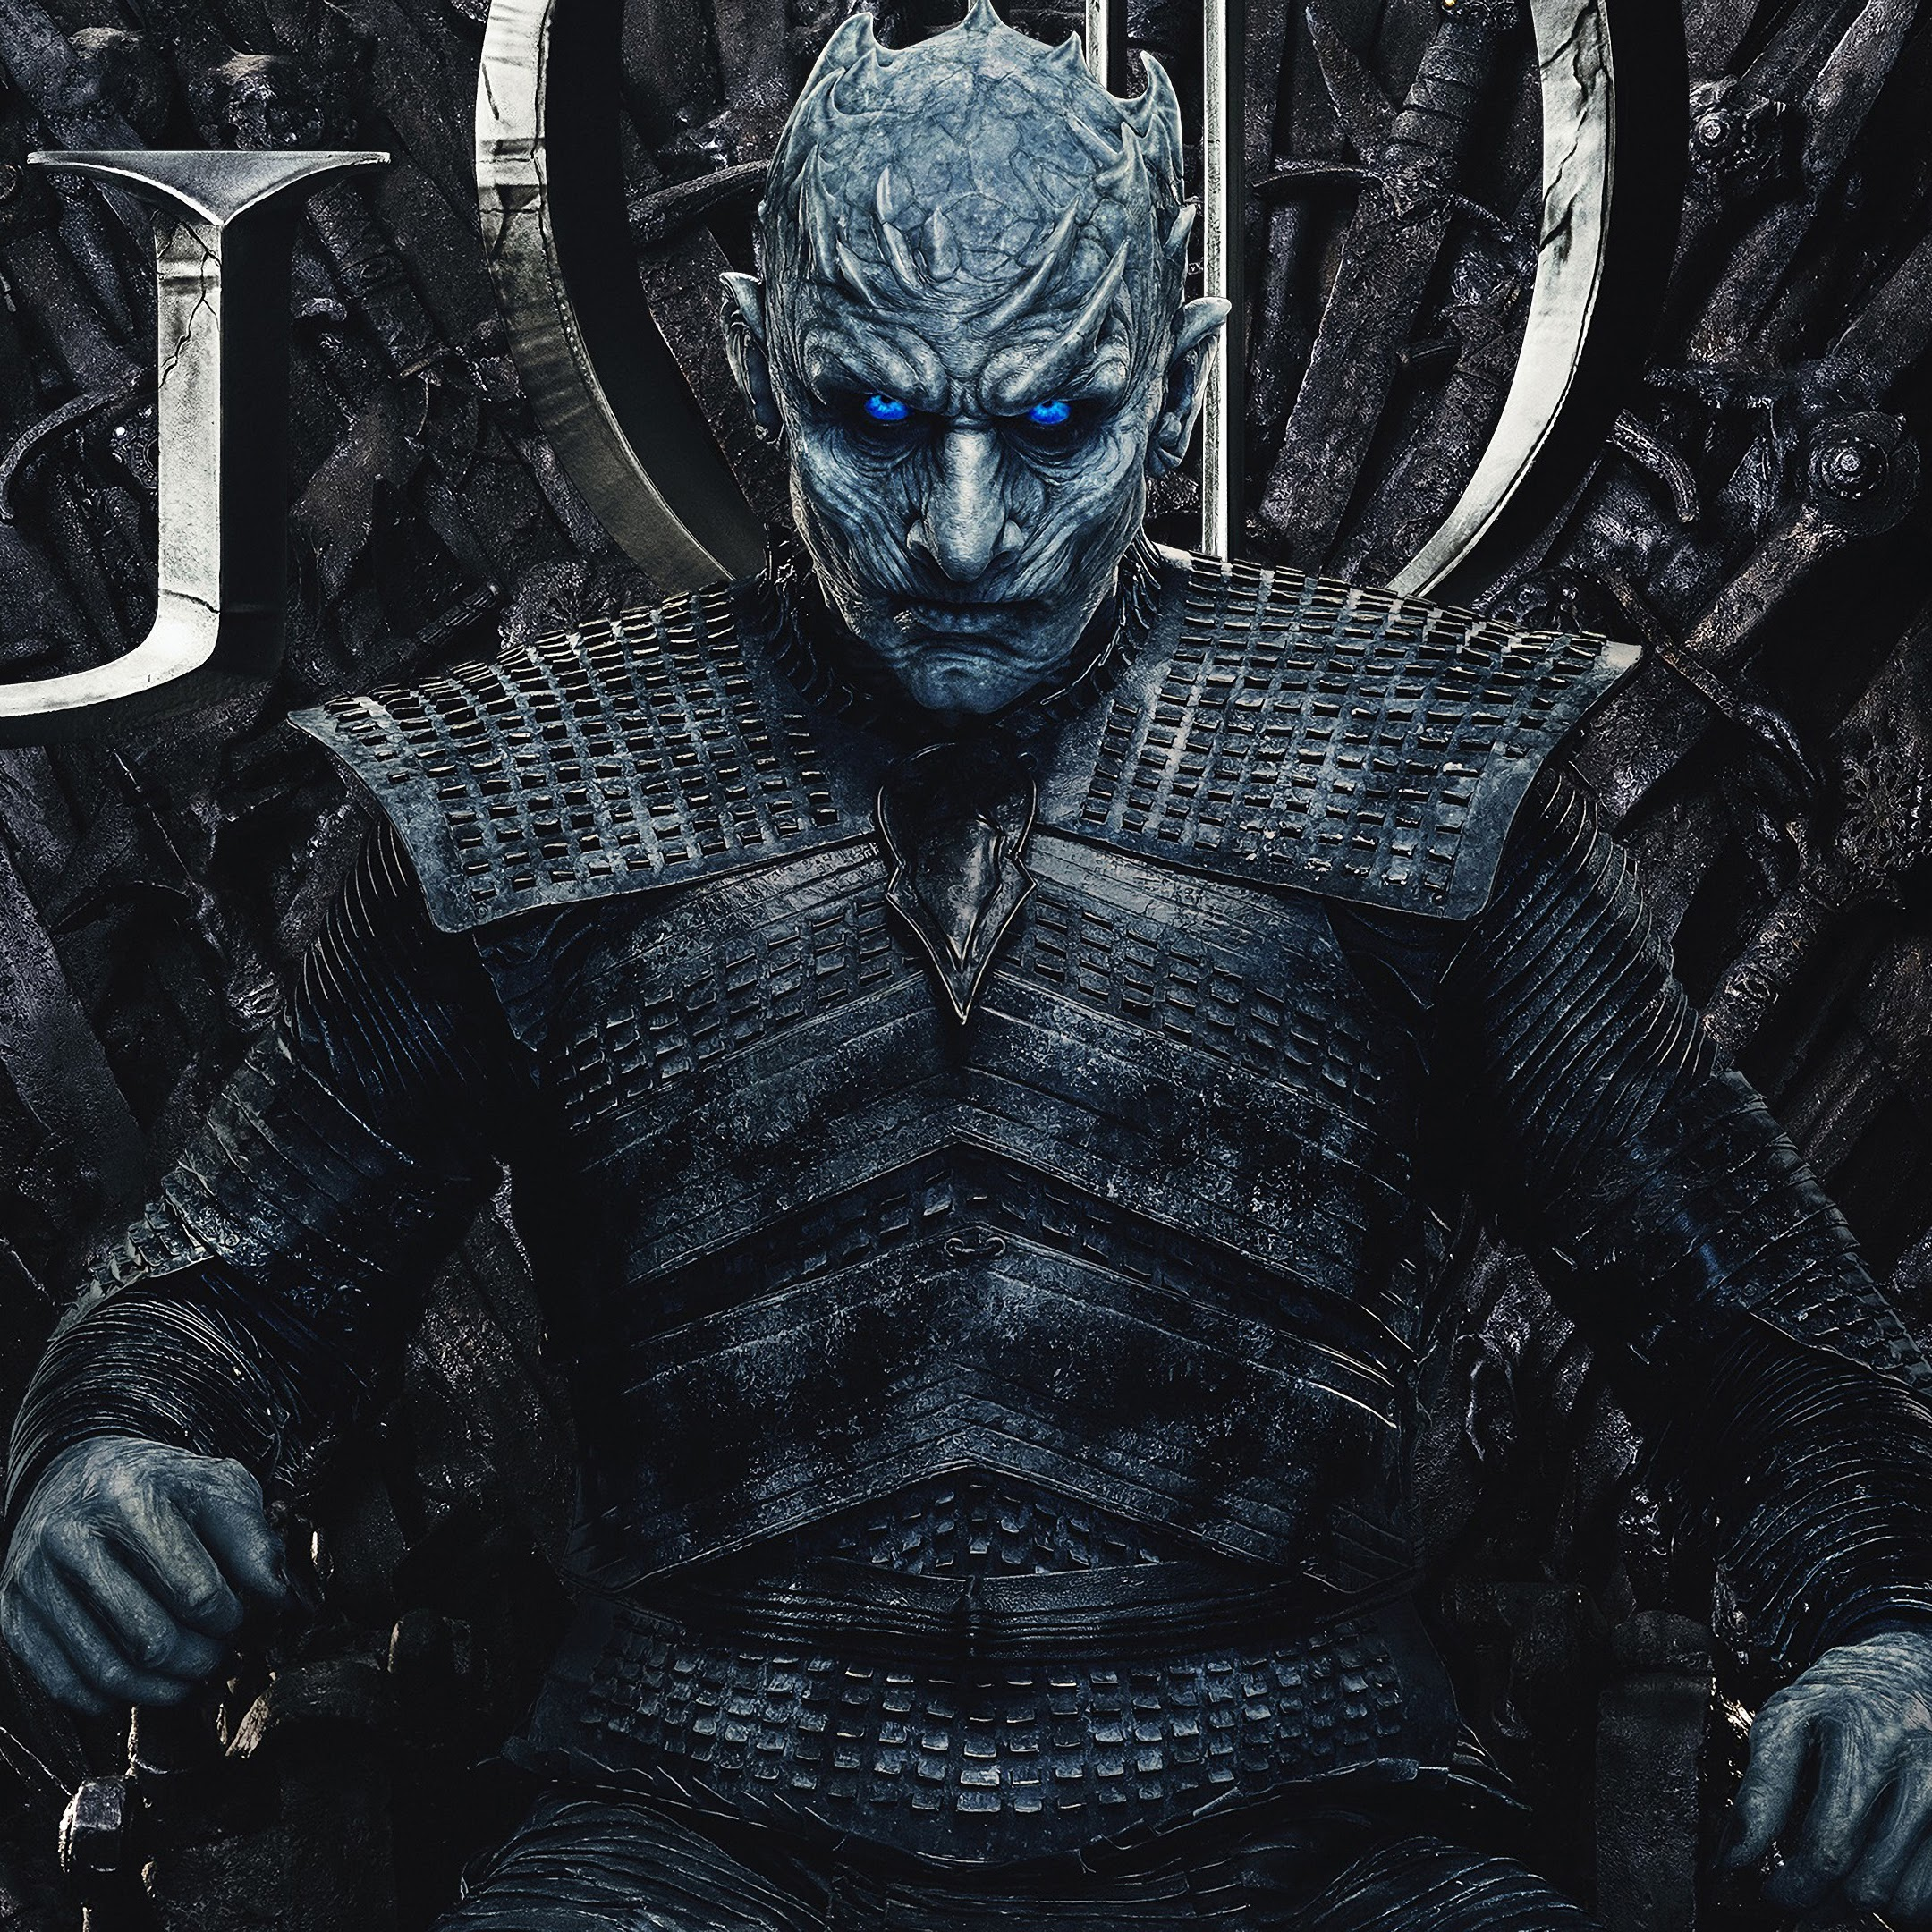 33 Night King From Game Of Thrones By Scepterdpinoy On: Night King, Game Of Thrones, Season 8, 4K, #15 Wallpaper